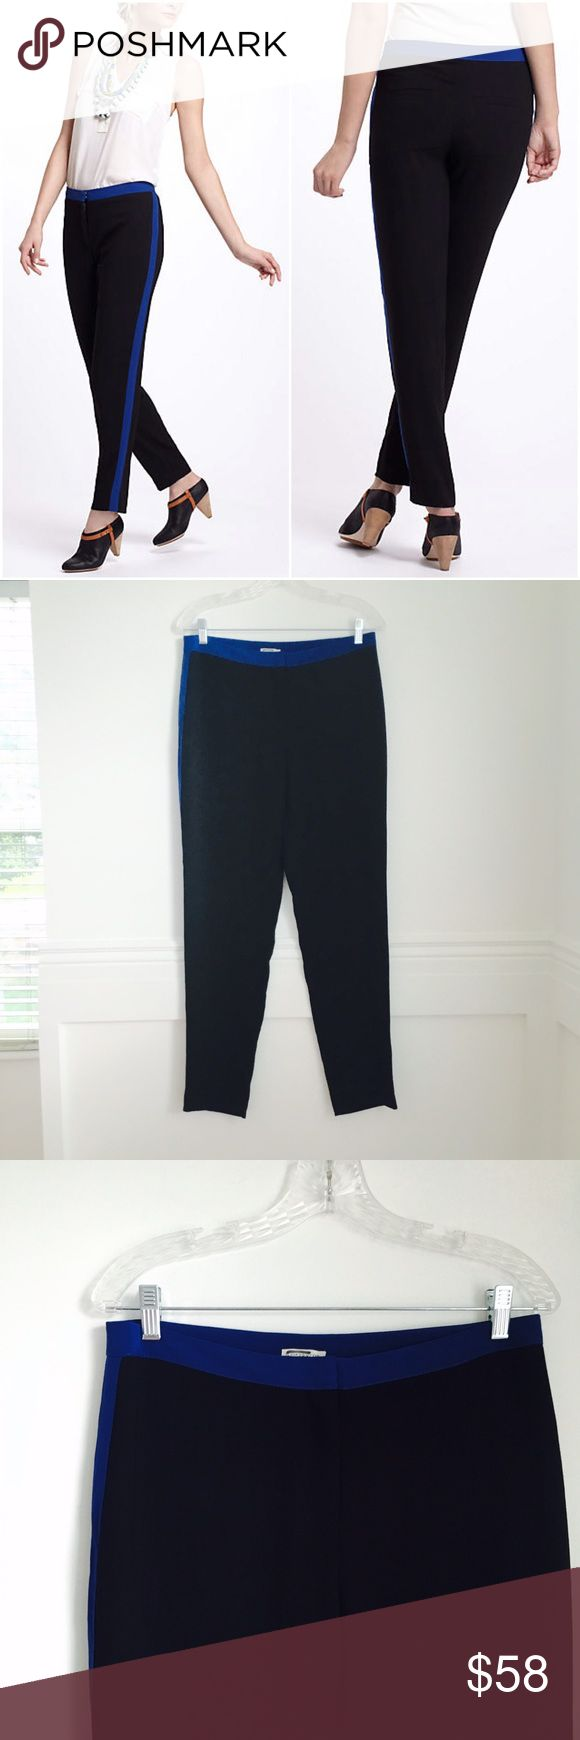 Leifsdottir trousers Crepe Tuxedo Trousers by Leifsdottir. Straight fitting black silky pants with cobalt stripes along the sides and waistline. Back welt pockets. Polyester and spandex. Crossed out tags. NEW WITH TAGS (Store tag missing, extra button pouch still attached). Size 6. Anthropologie Pants